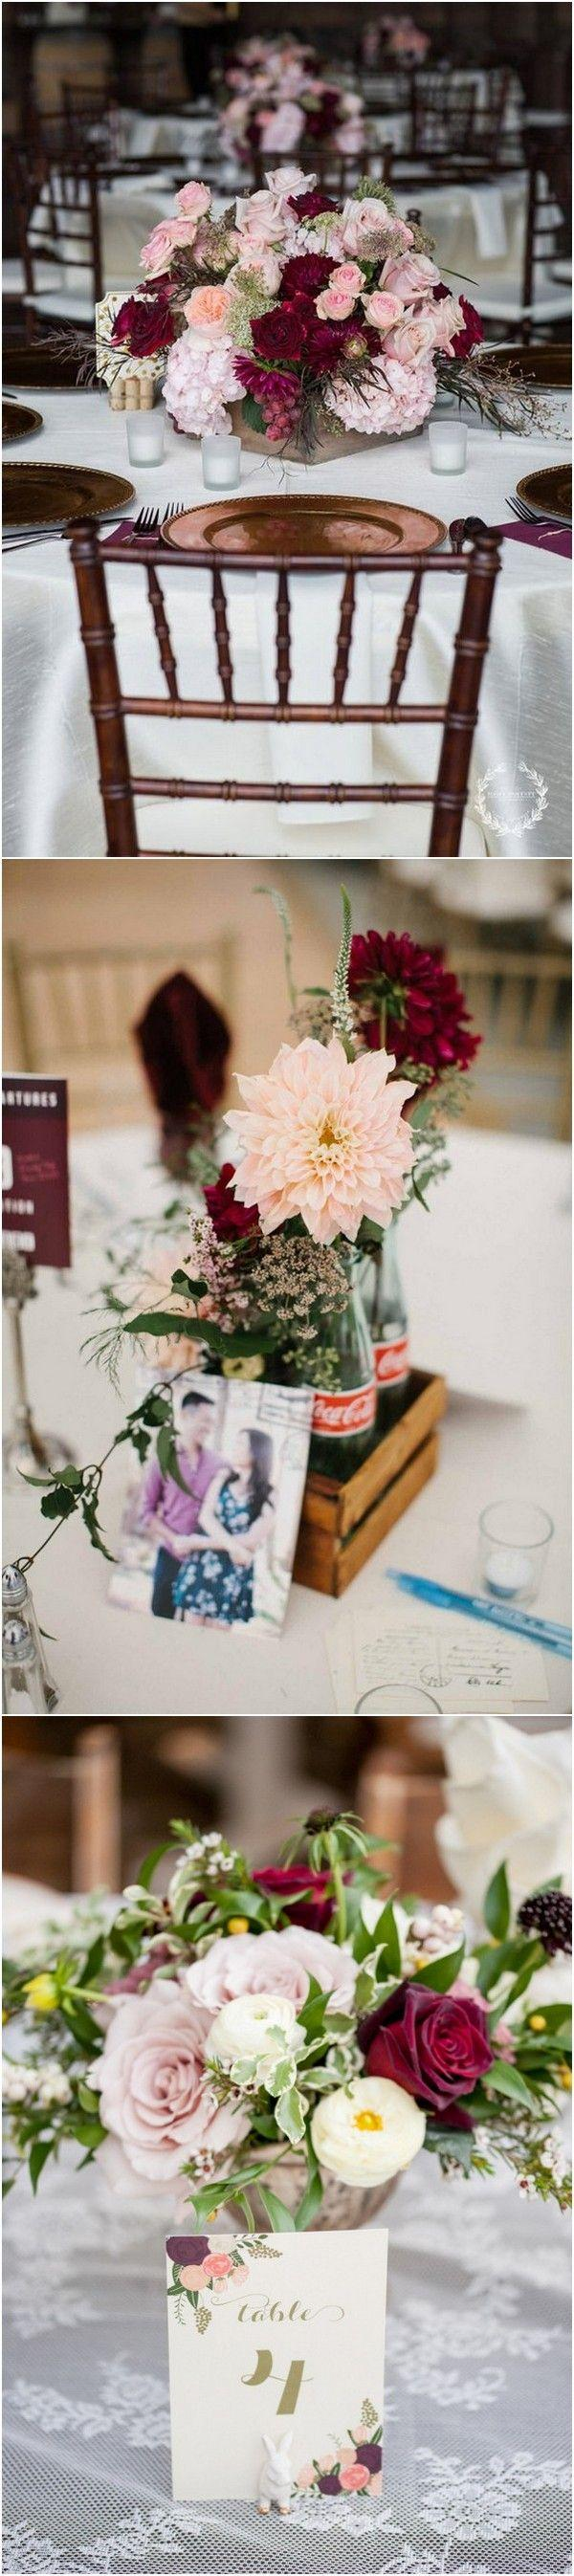 Wedding - Trending-10 Burgundy And Blush Wedding Centerpieces For 2018 - Page 2 Of 2